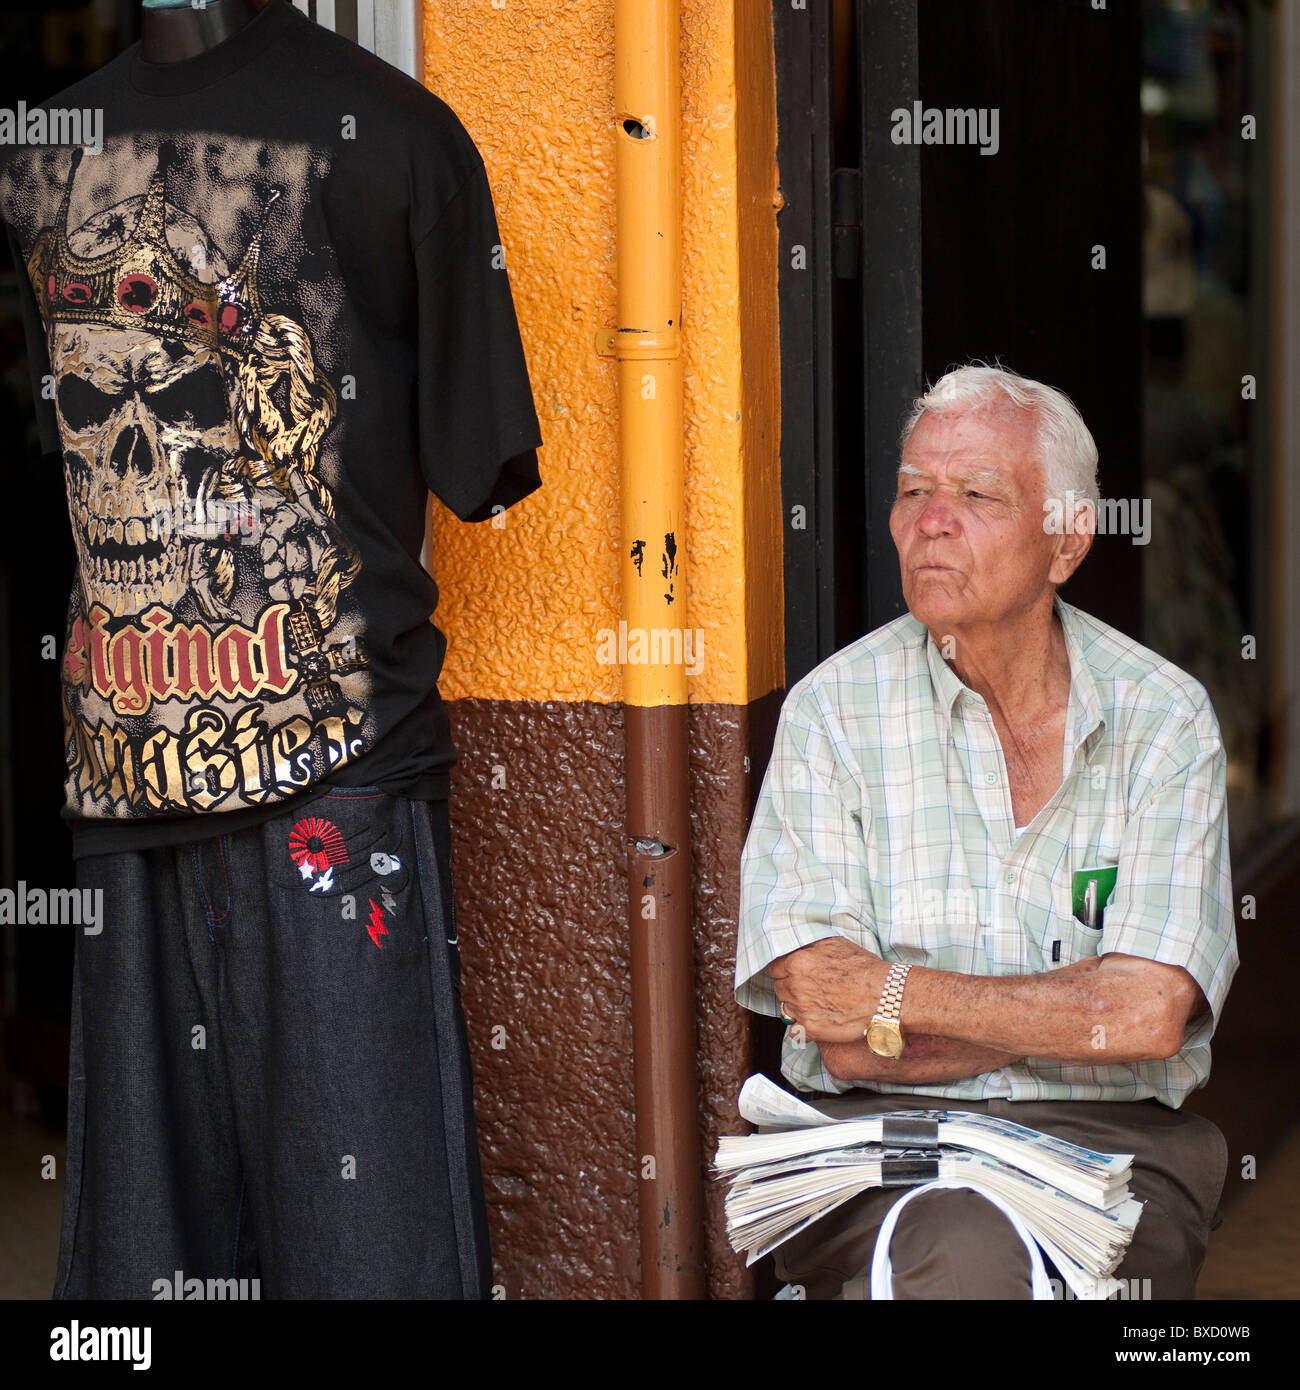 Man sitting in front of a store in San Jose Costa Rica - Stock Image